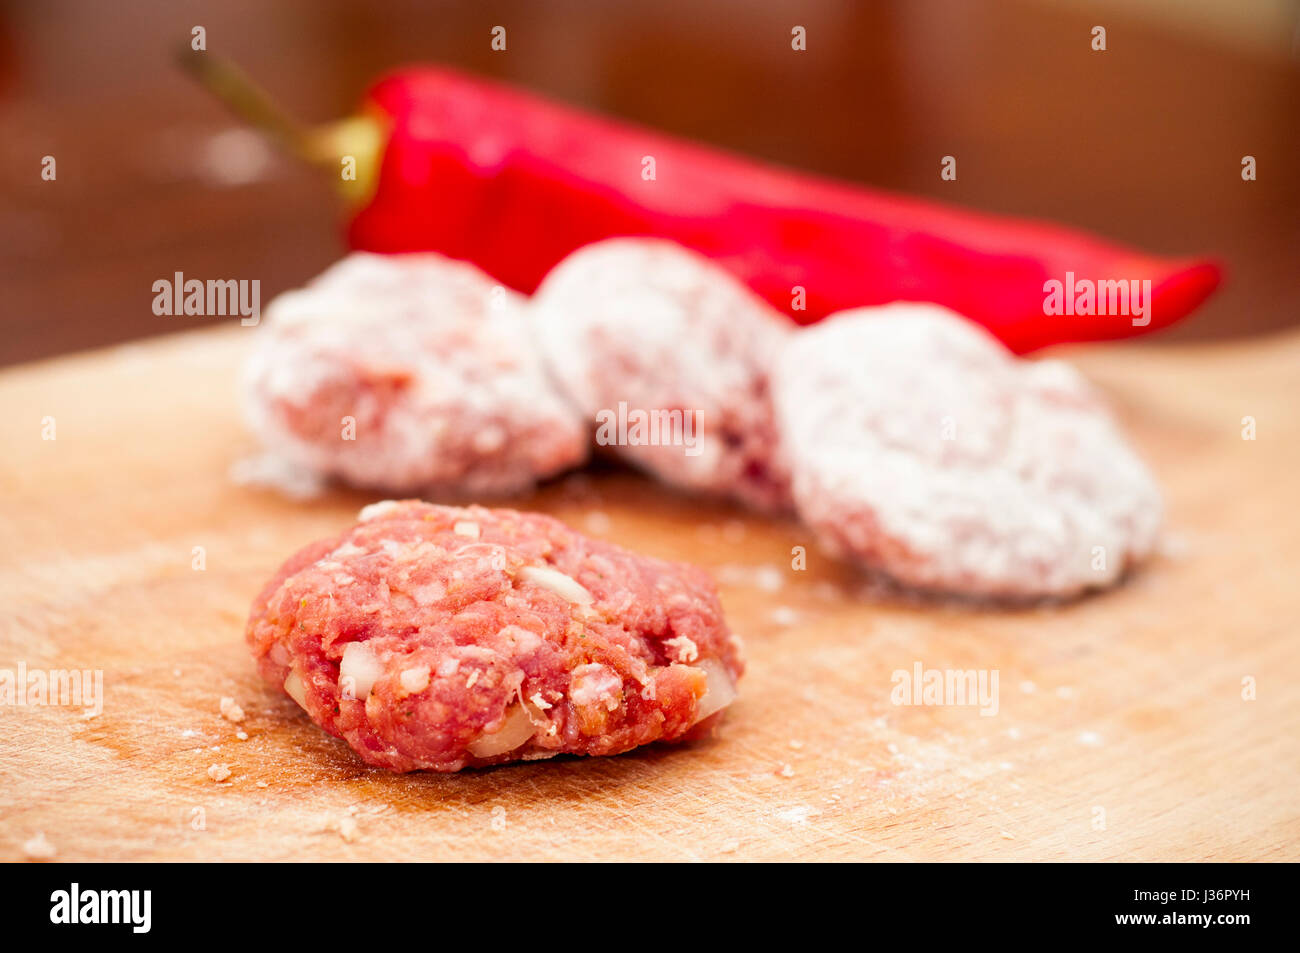 meatballs and red pepper - Stock Image